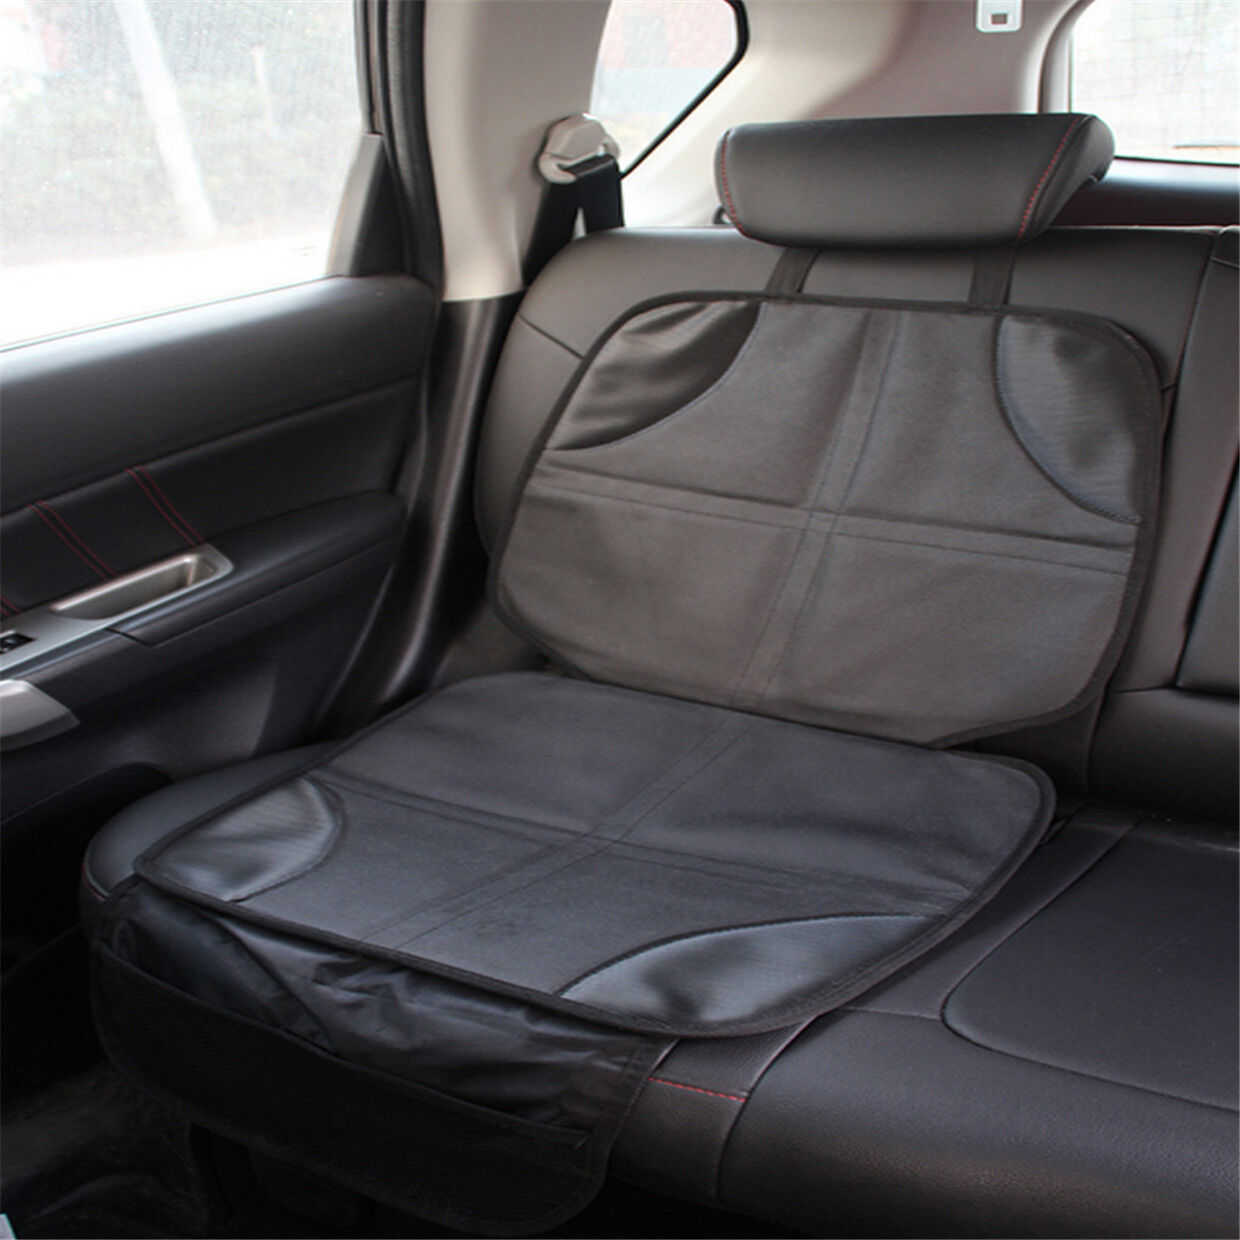 Car Seat Protector For Leather Seats >> Details About Baby Car Seat Protector Mat Covers Under Child Seat Leather Saver Car Cover Yp